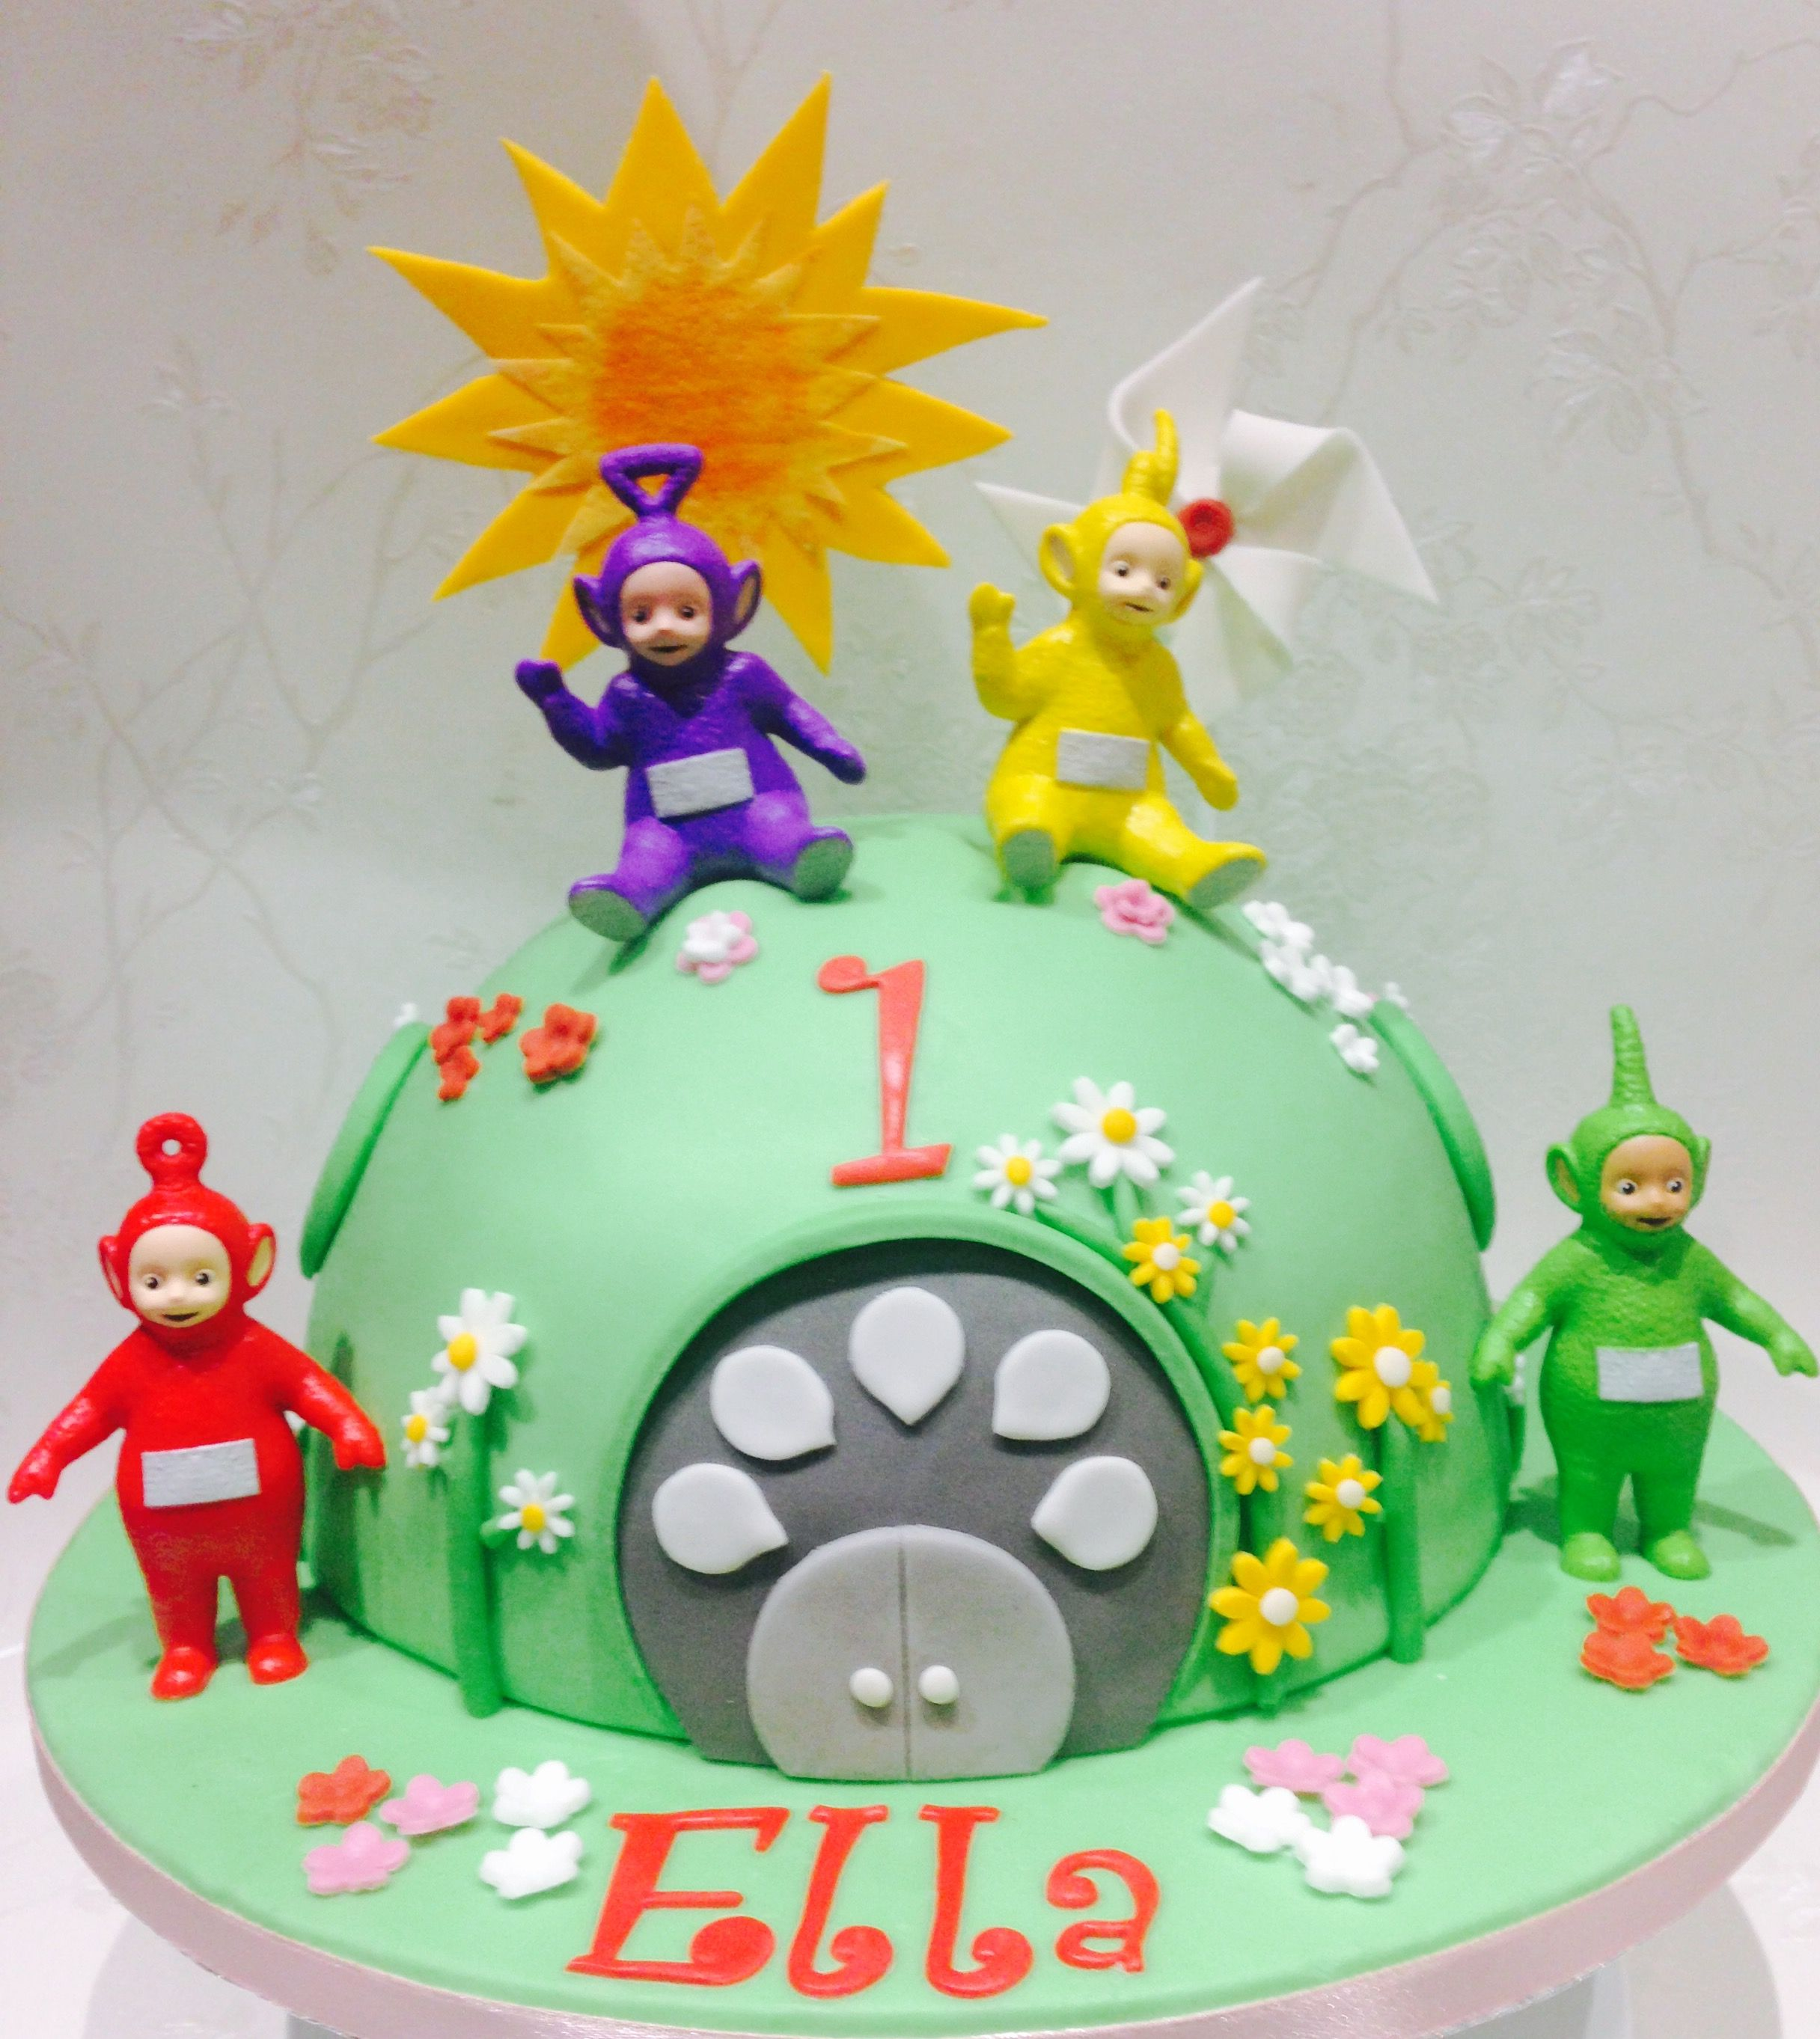 Astounding Teletubbie 1St Birthday Cake Teletubbies Birthday Cake Toddler Birthday Cards Printable Nowaargucafe Filternl